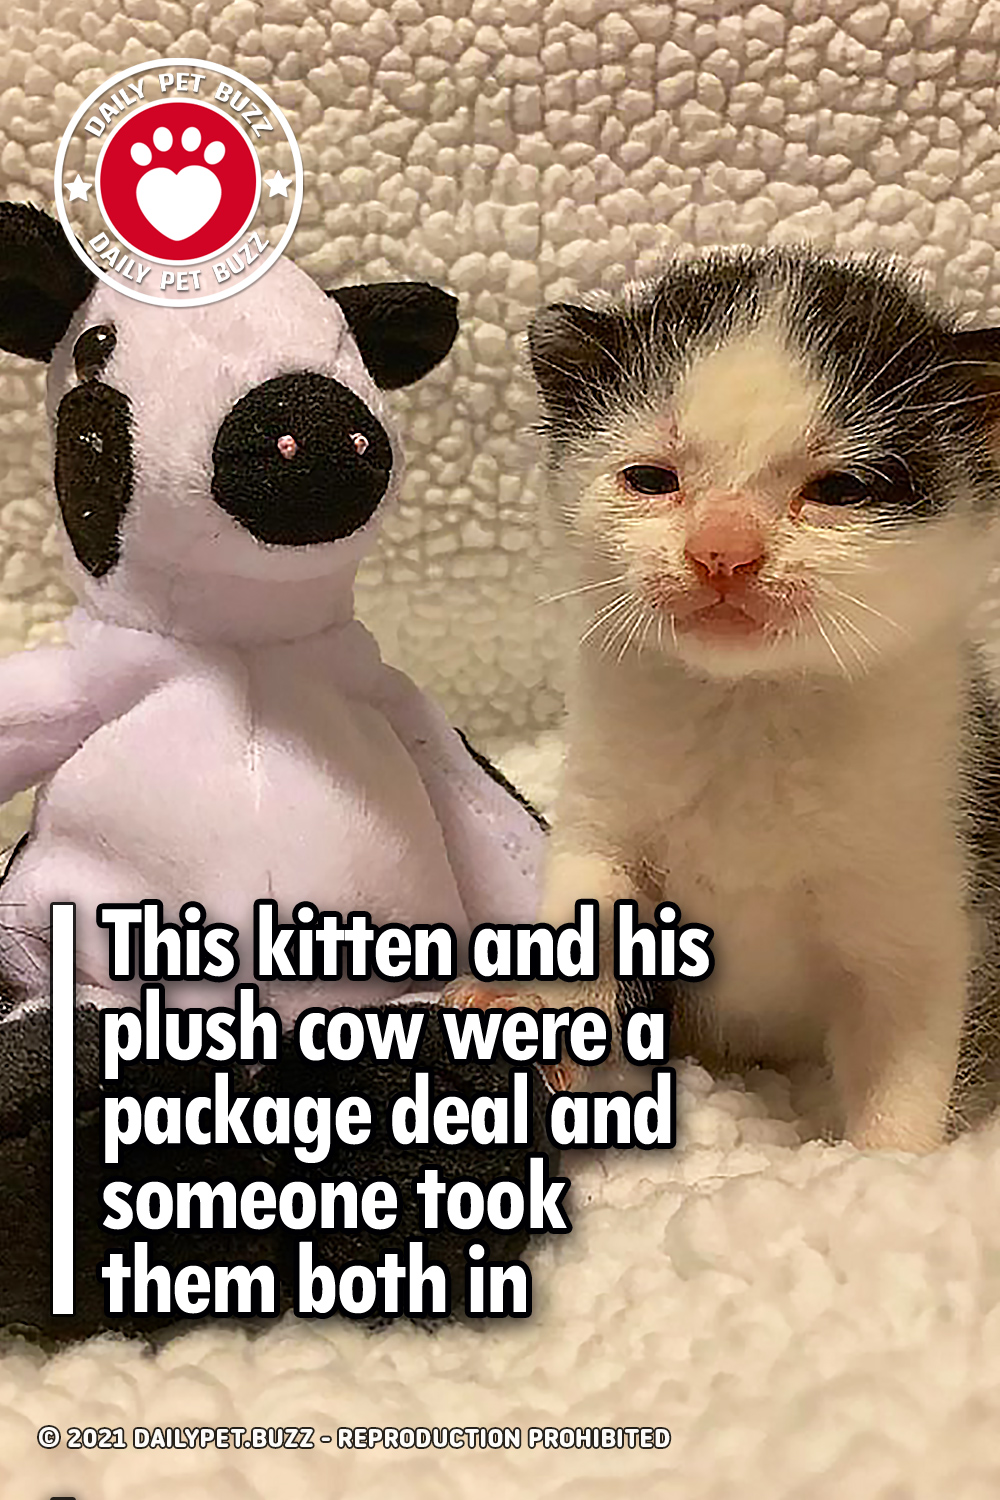 This kitten and his plush cow were a package deal and someone took them both in